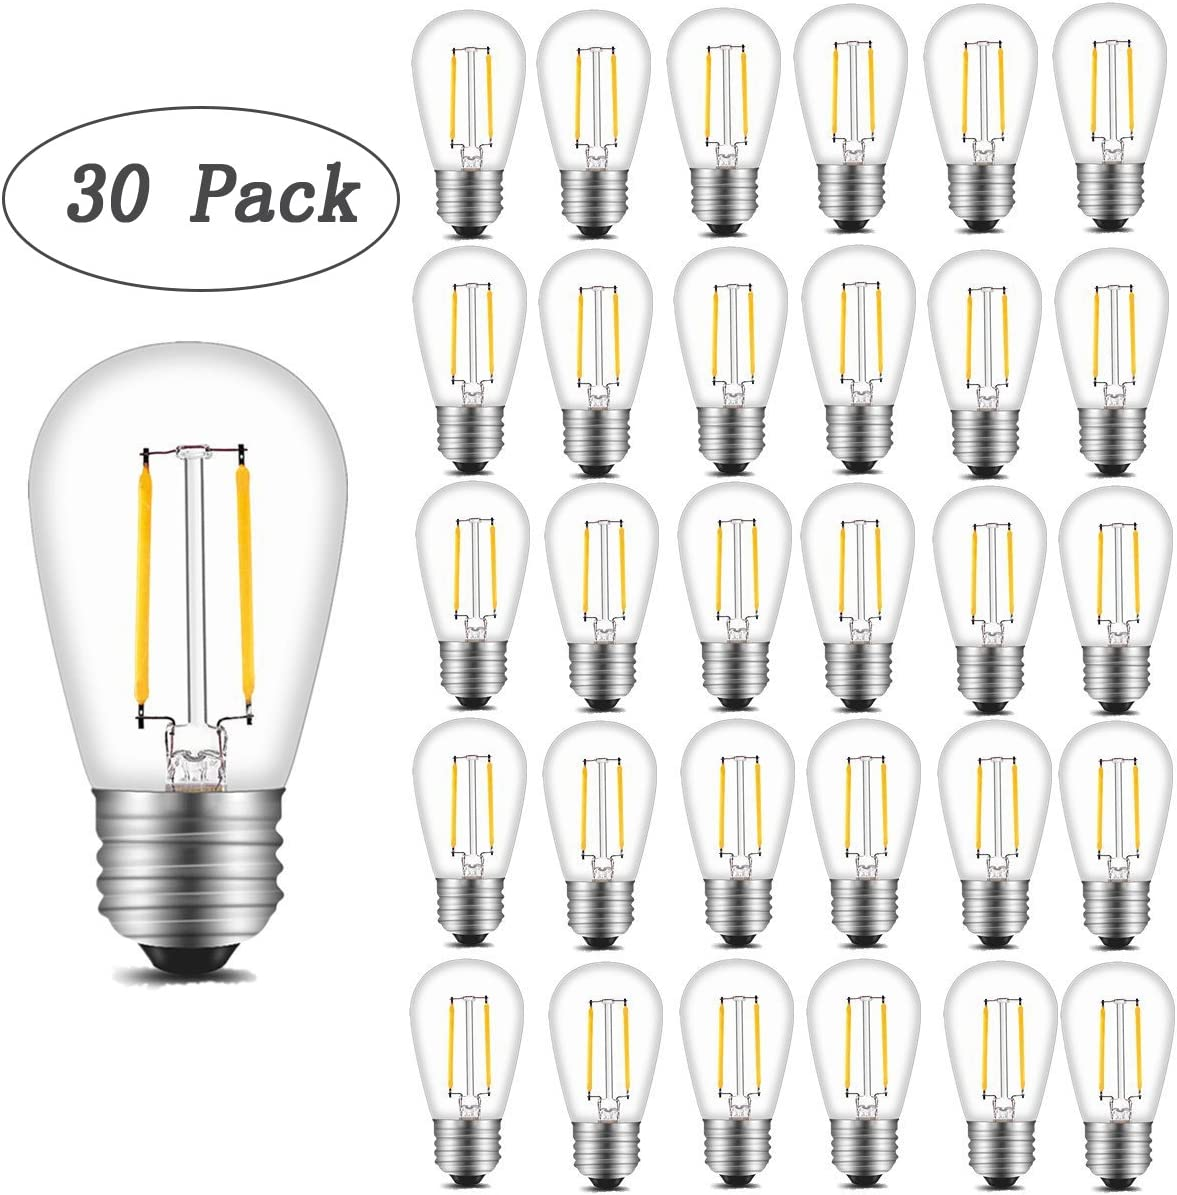 INNOCCY Vintage S14 LED Light Bulbs, 2W 200 Lumens 2700K Warm White Waterproof Dimmable Bulb Great for Outdoor String Lights, 30 Pack